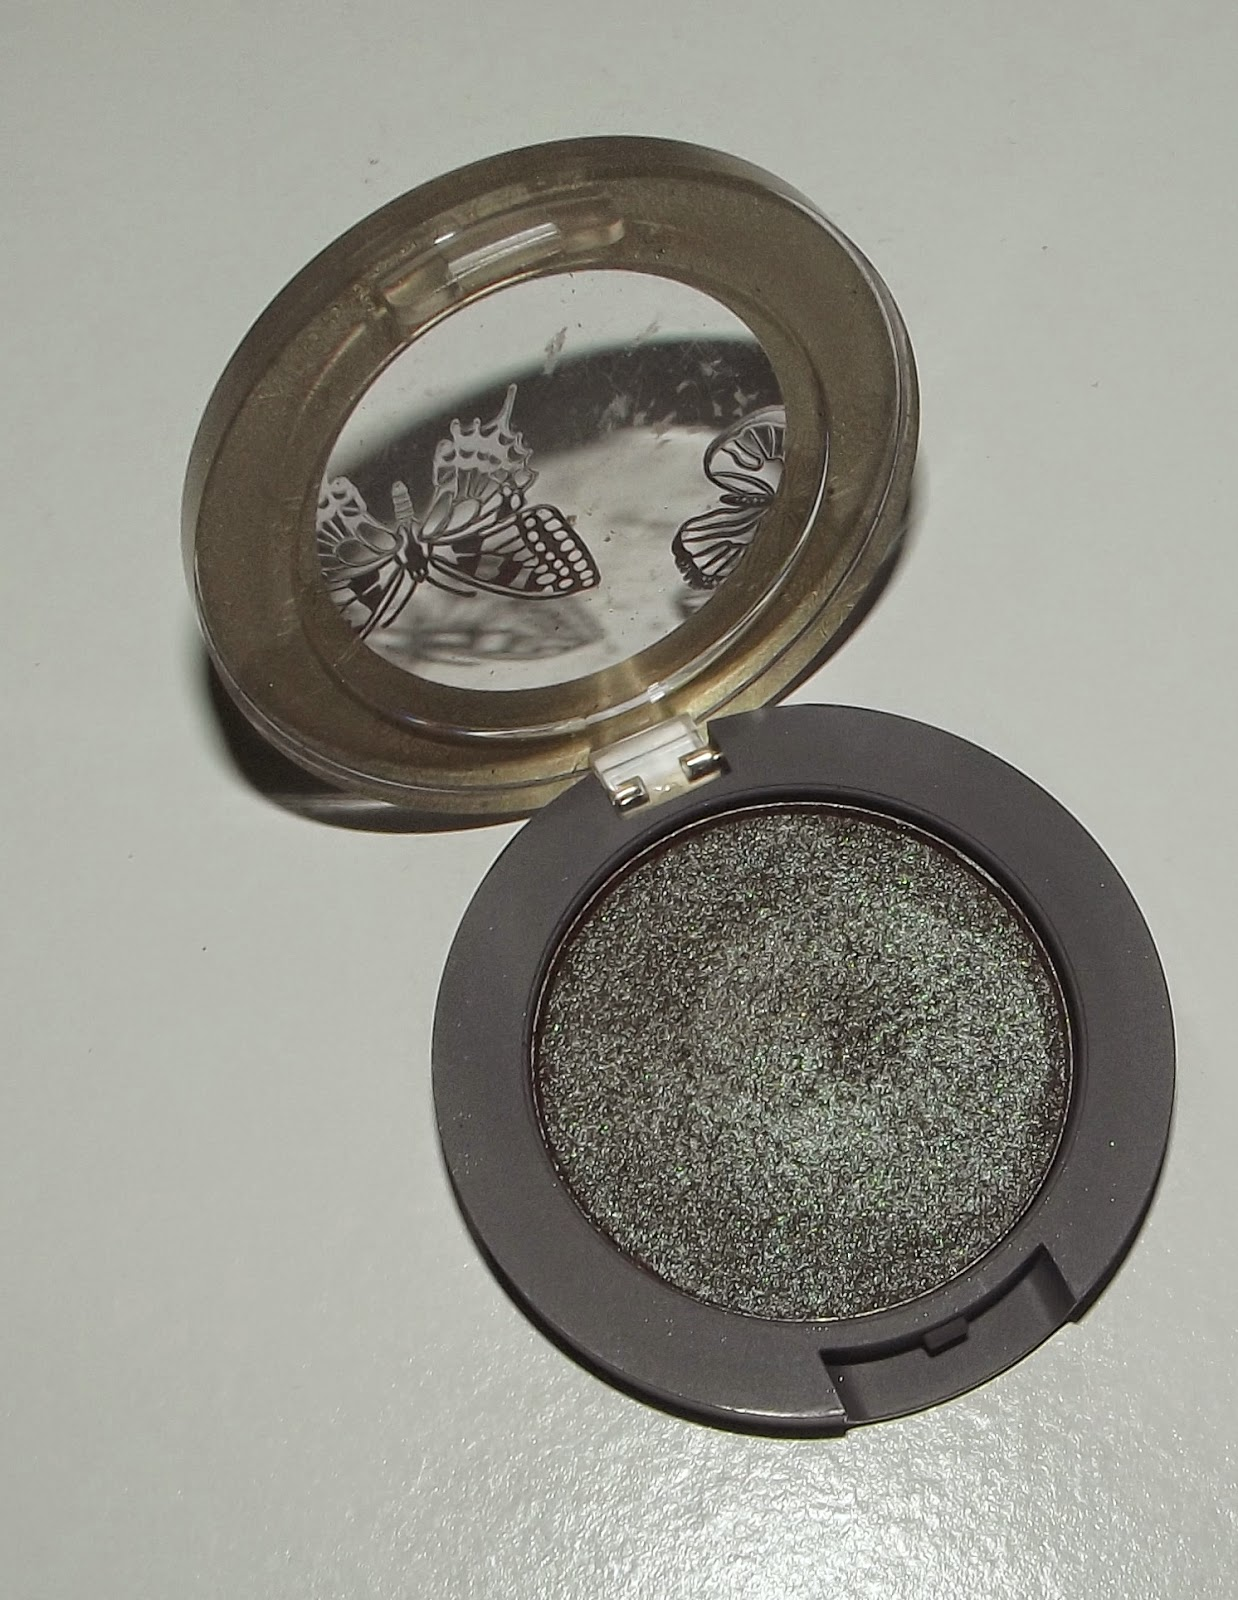 Mac Single Eyeshadow Collection: Neala Olivia: MAC 'Club' Eyeshadow Dupes